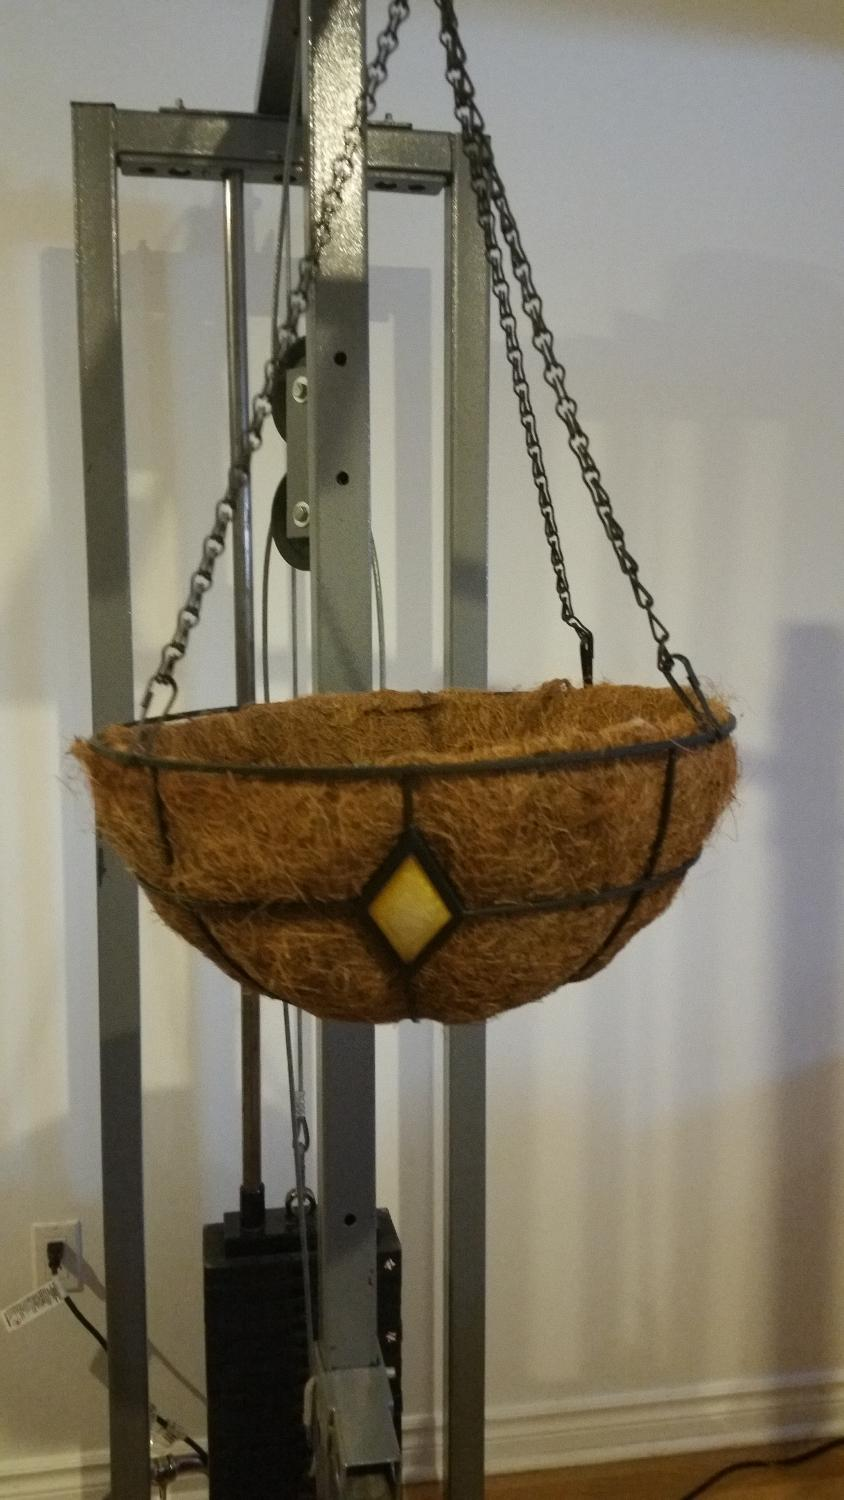 Flower Hanging Baskets Sale : Find more two hanging plant baskets with coco liner for